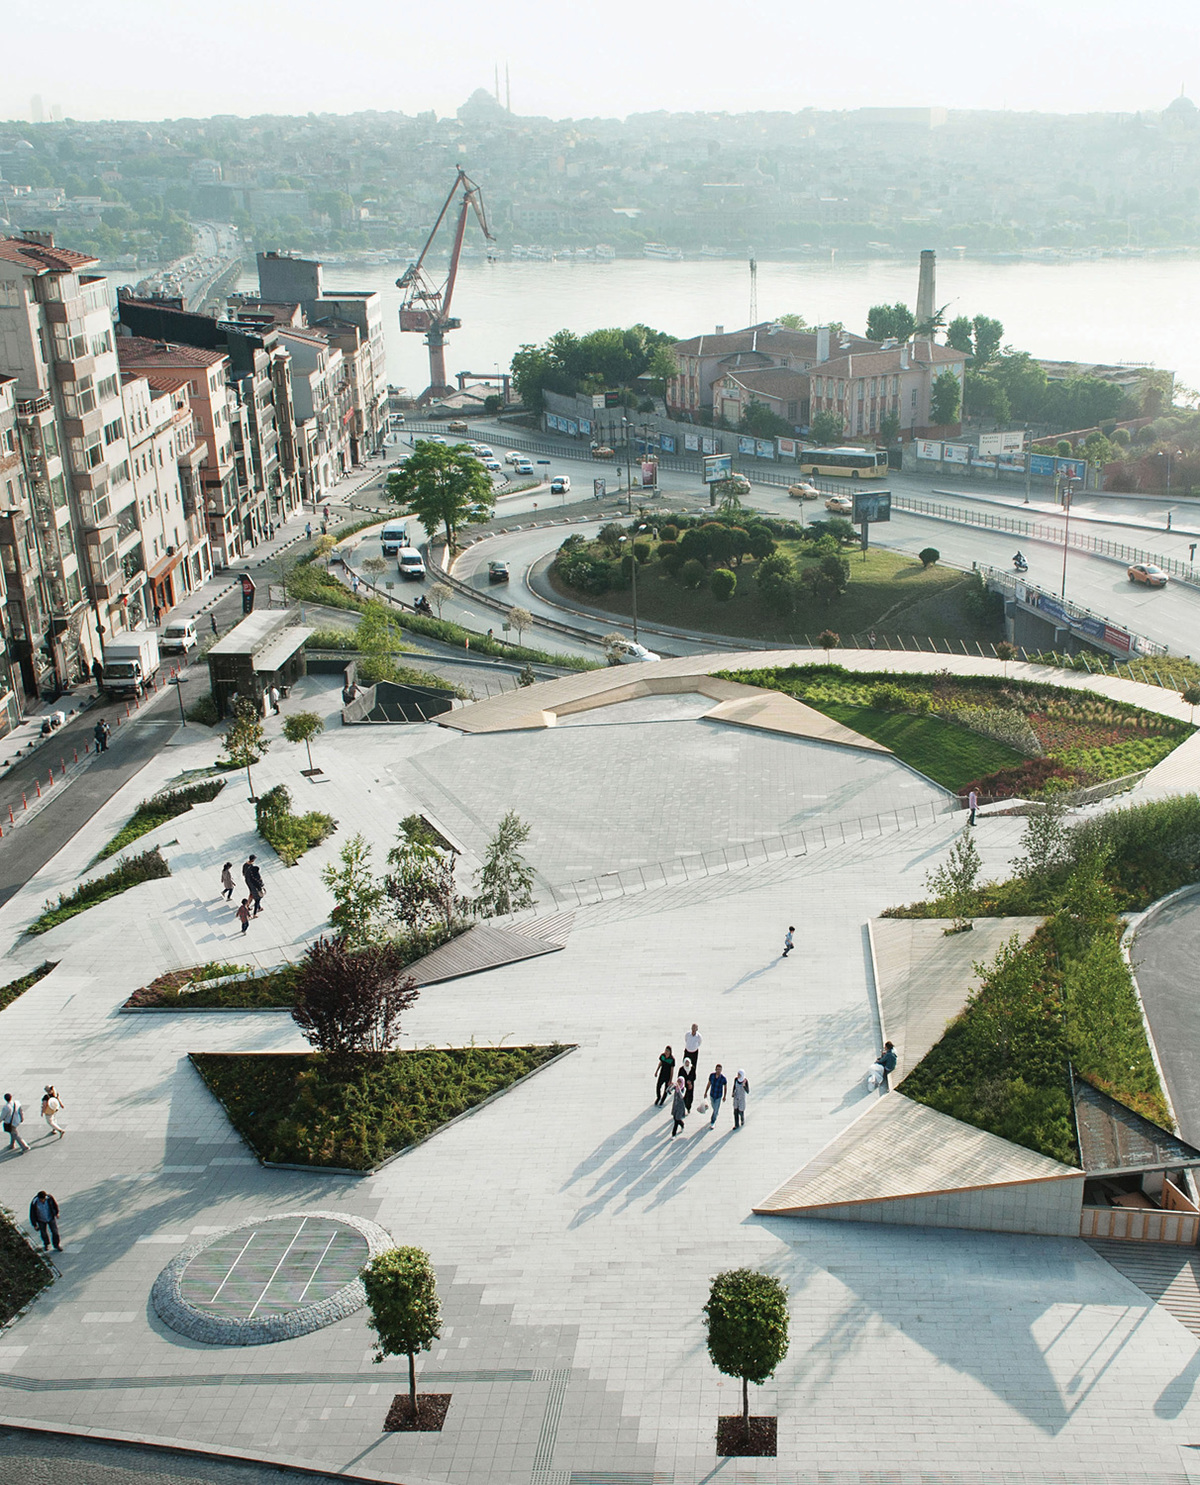 Shortlisted for Urban Design of the Year: SANALarc for Sishane Park in Istanbul, Turkey. Photo courtesy of LEAF Awards.